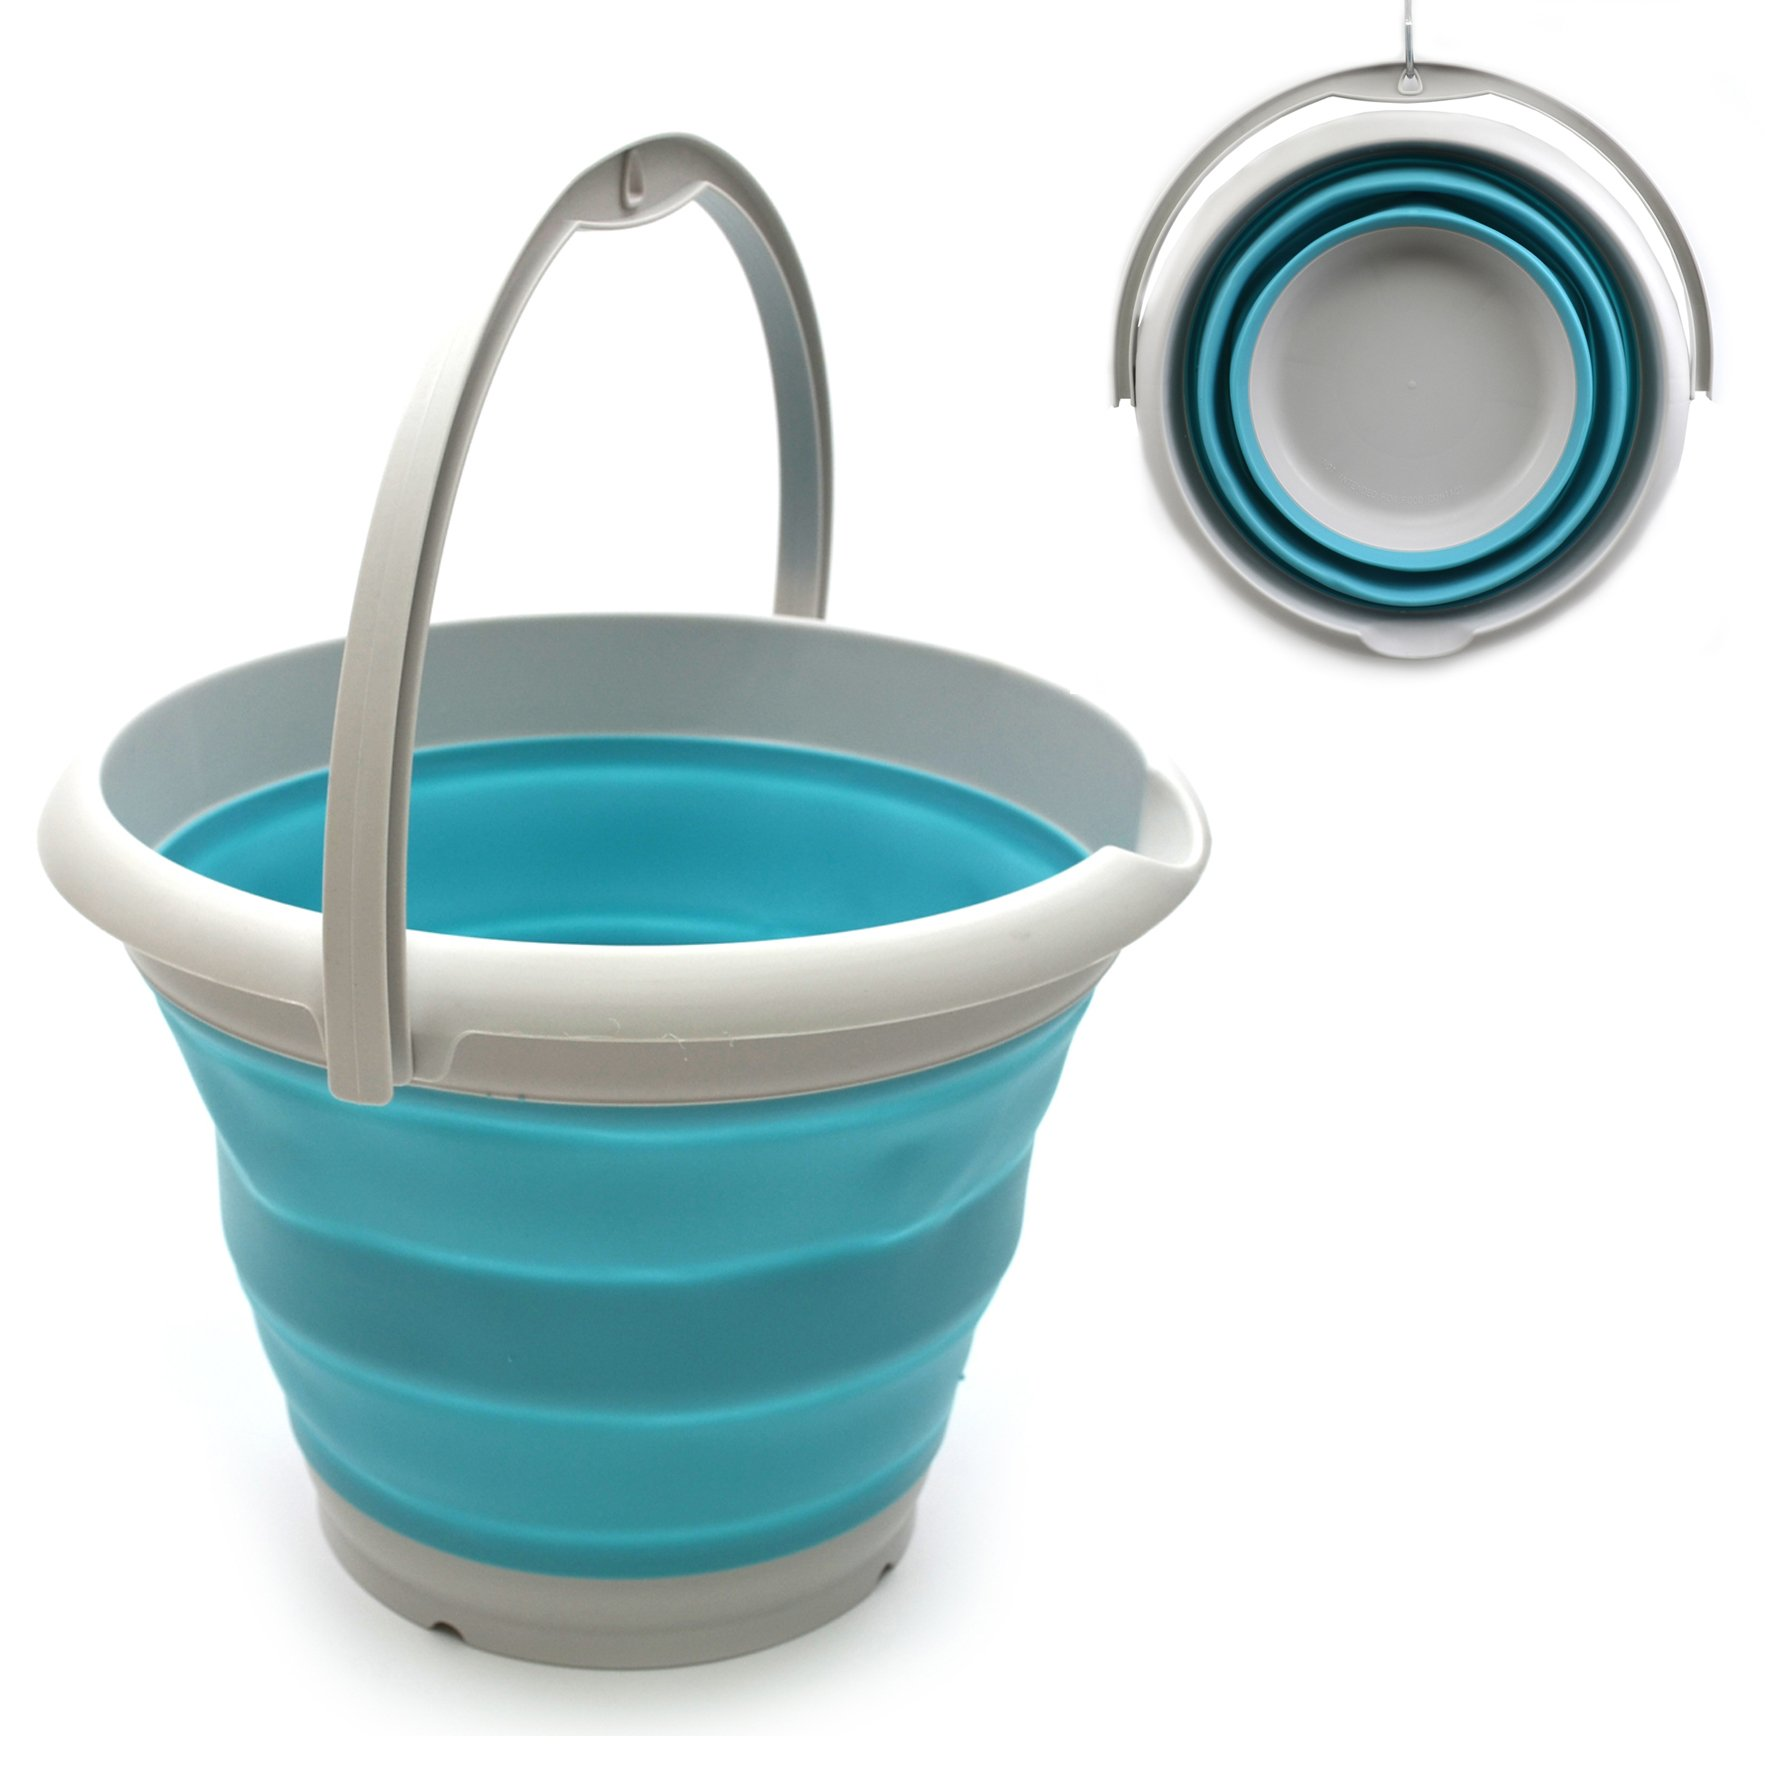 SAMMART 10L (2.6 Gallon) Collapsible Plastic Bucket - Foldable Round Tub - Portable Fishing Water Pail - Space Saving Outdoor Waterpot, size 33cm dia (1, Bright Blue) by SAMMART (Image #1)